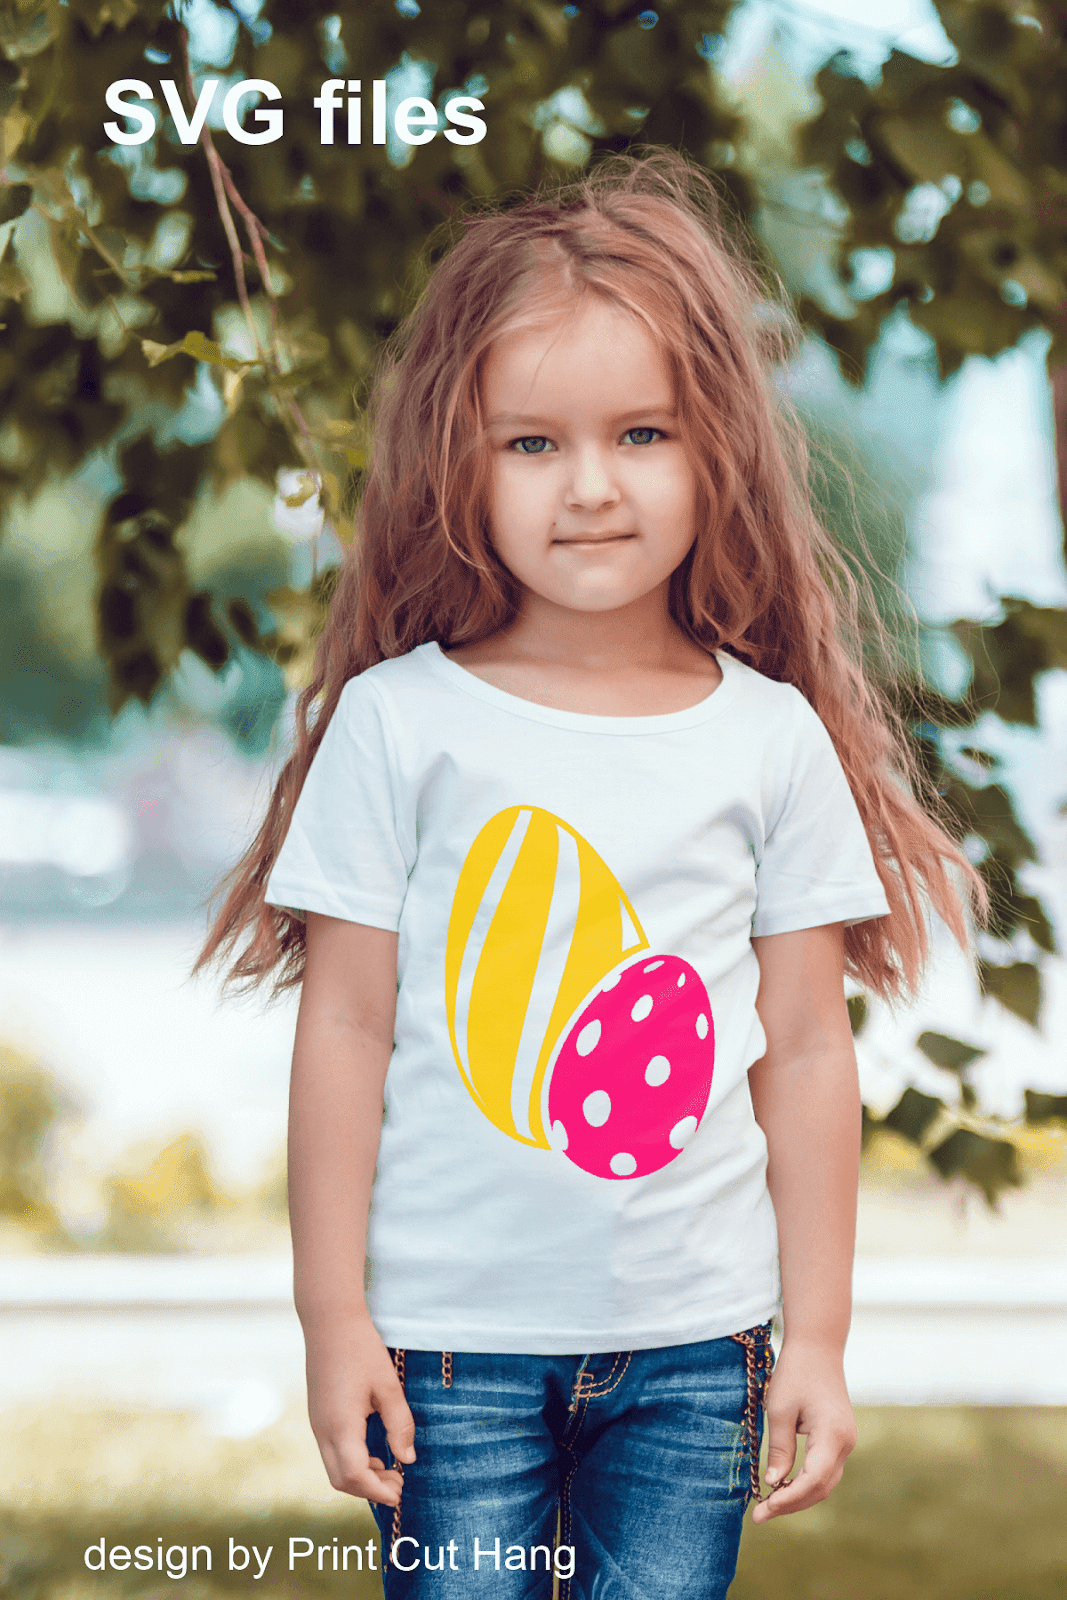 EASTER EGGS STRIPES AND DOTS SVG